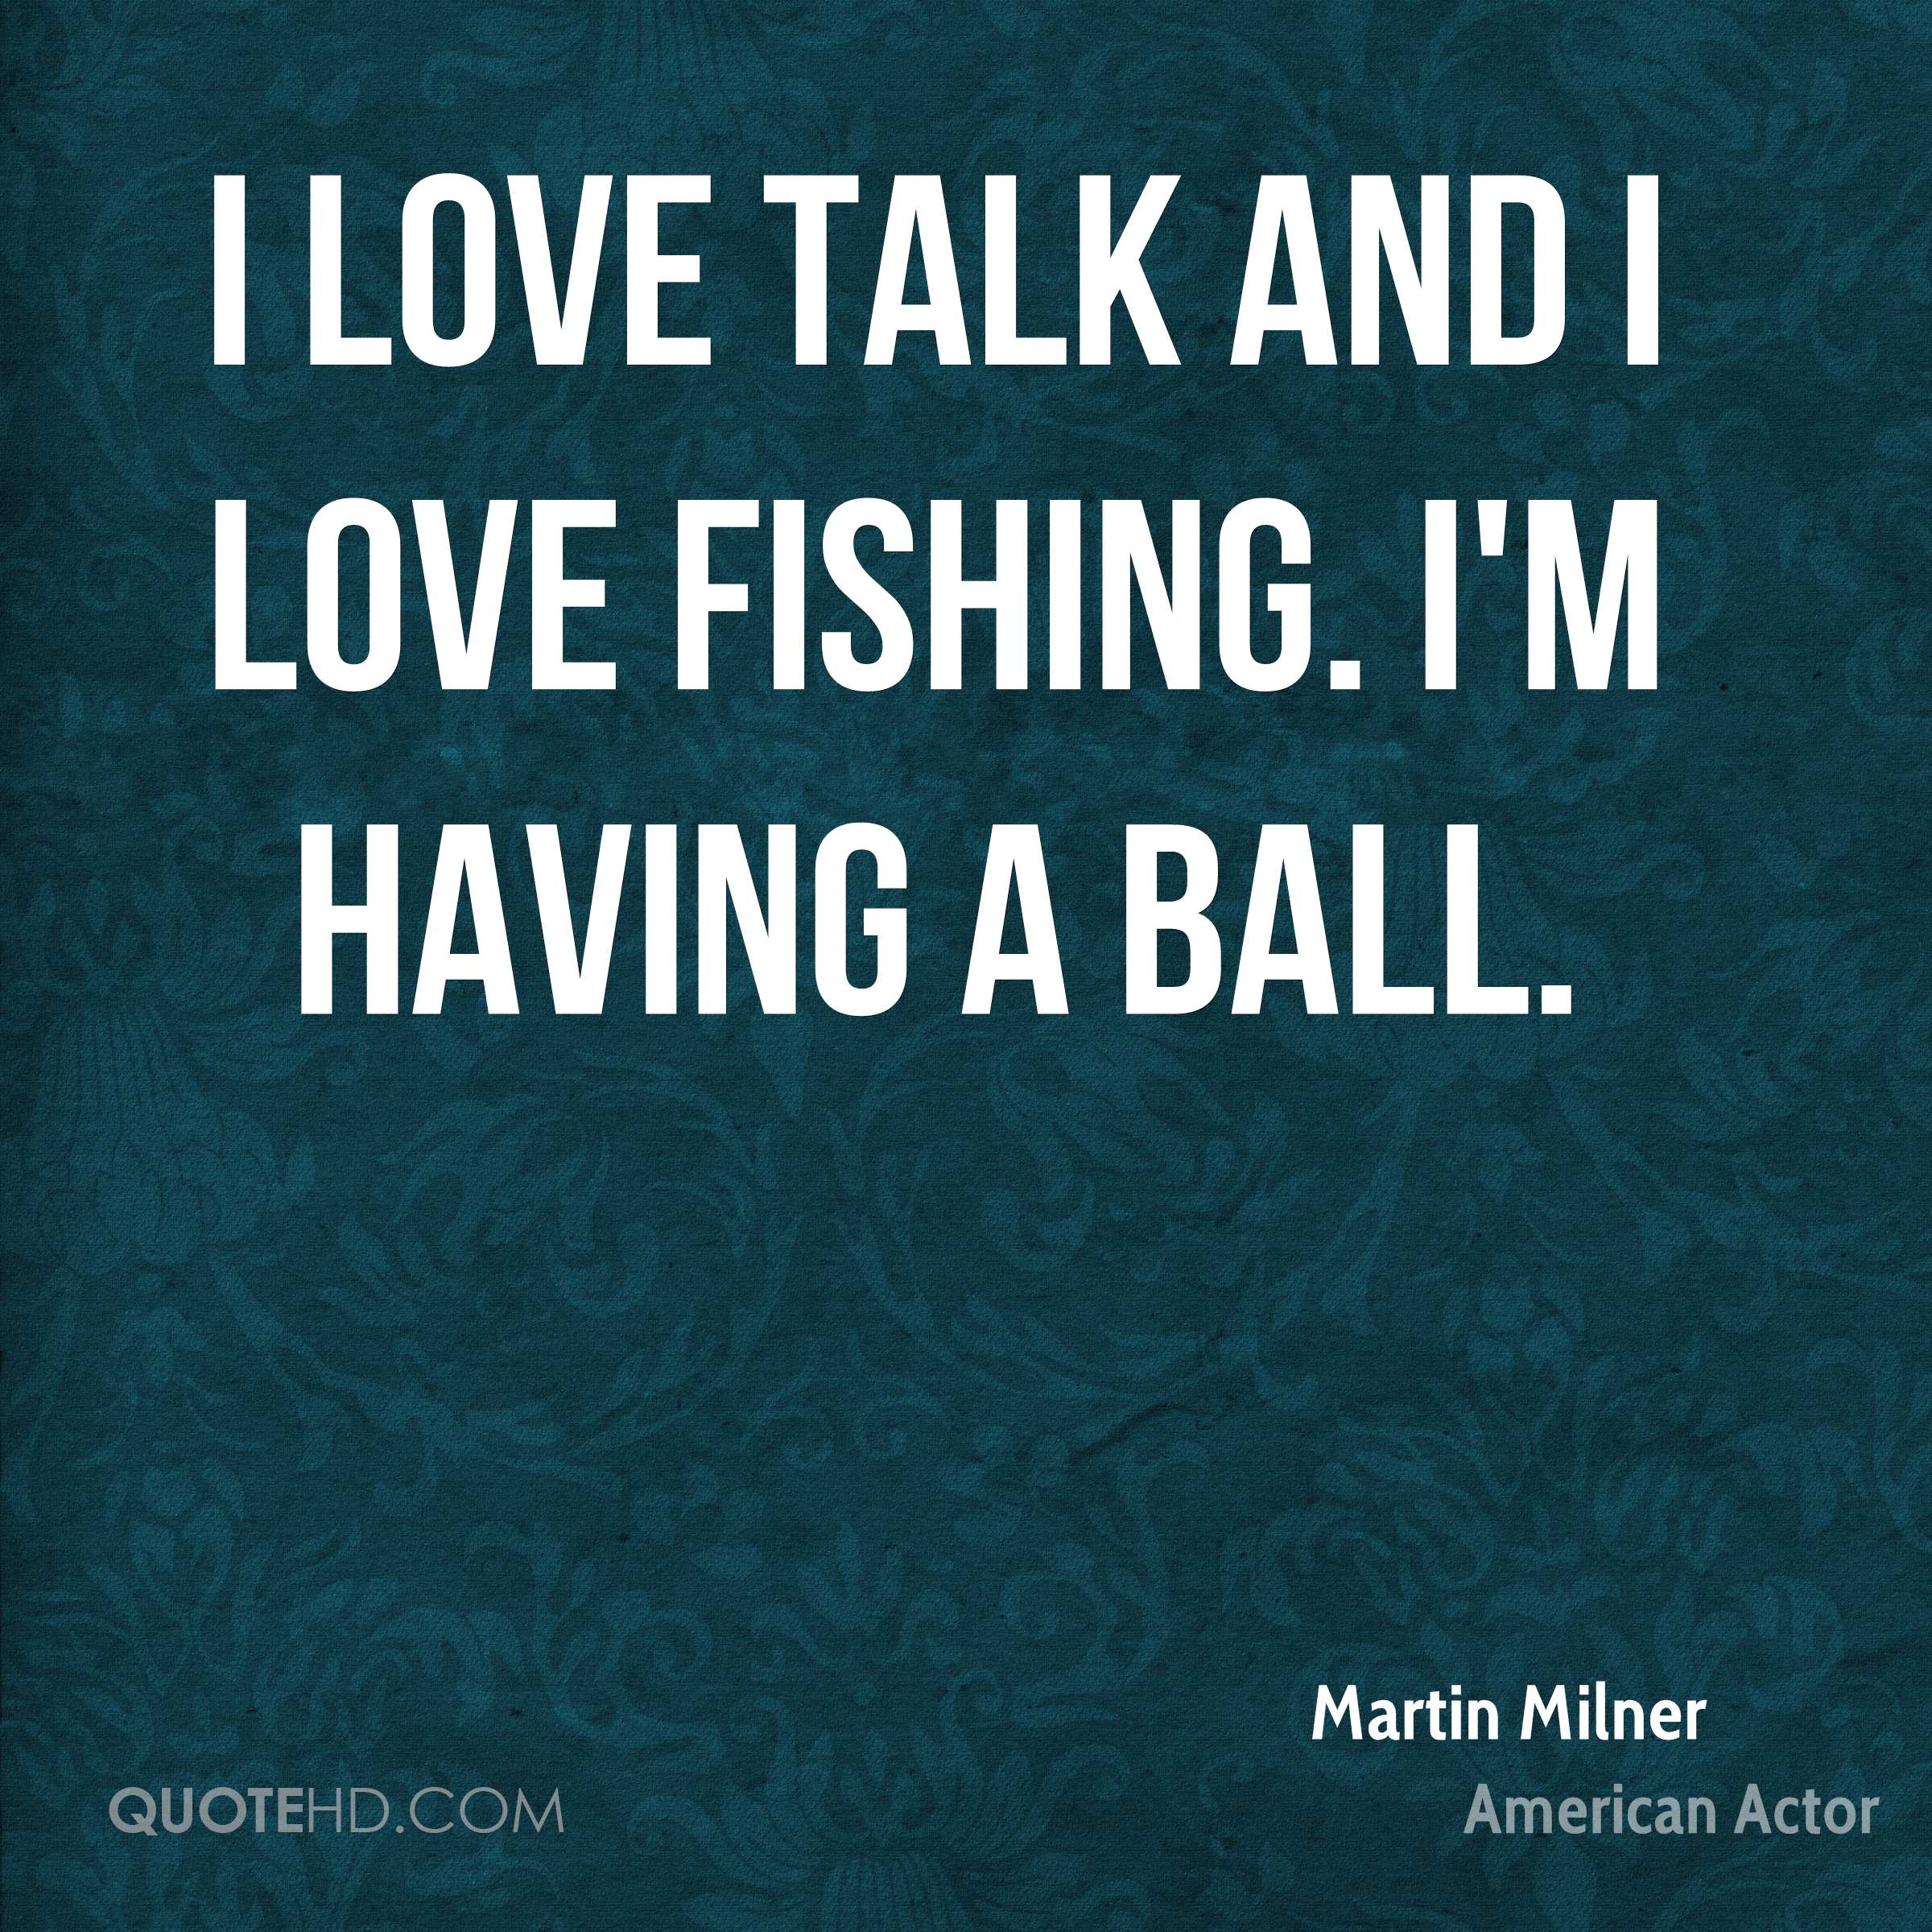 Love Fishing Quotes Martin Milner Quotes  Quotehd